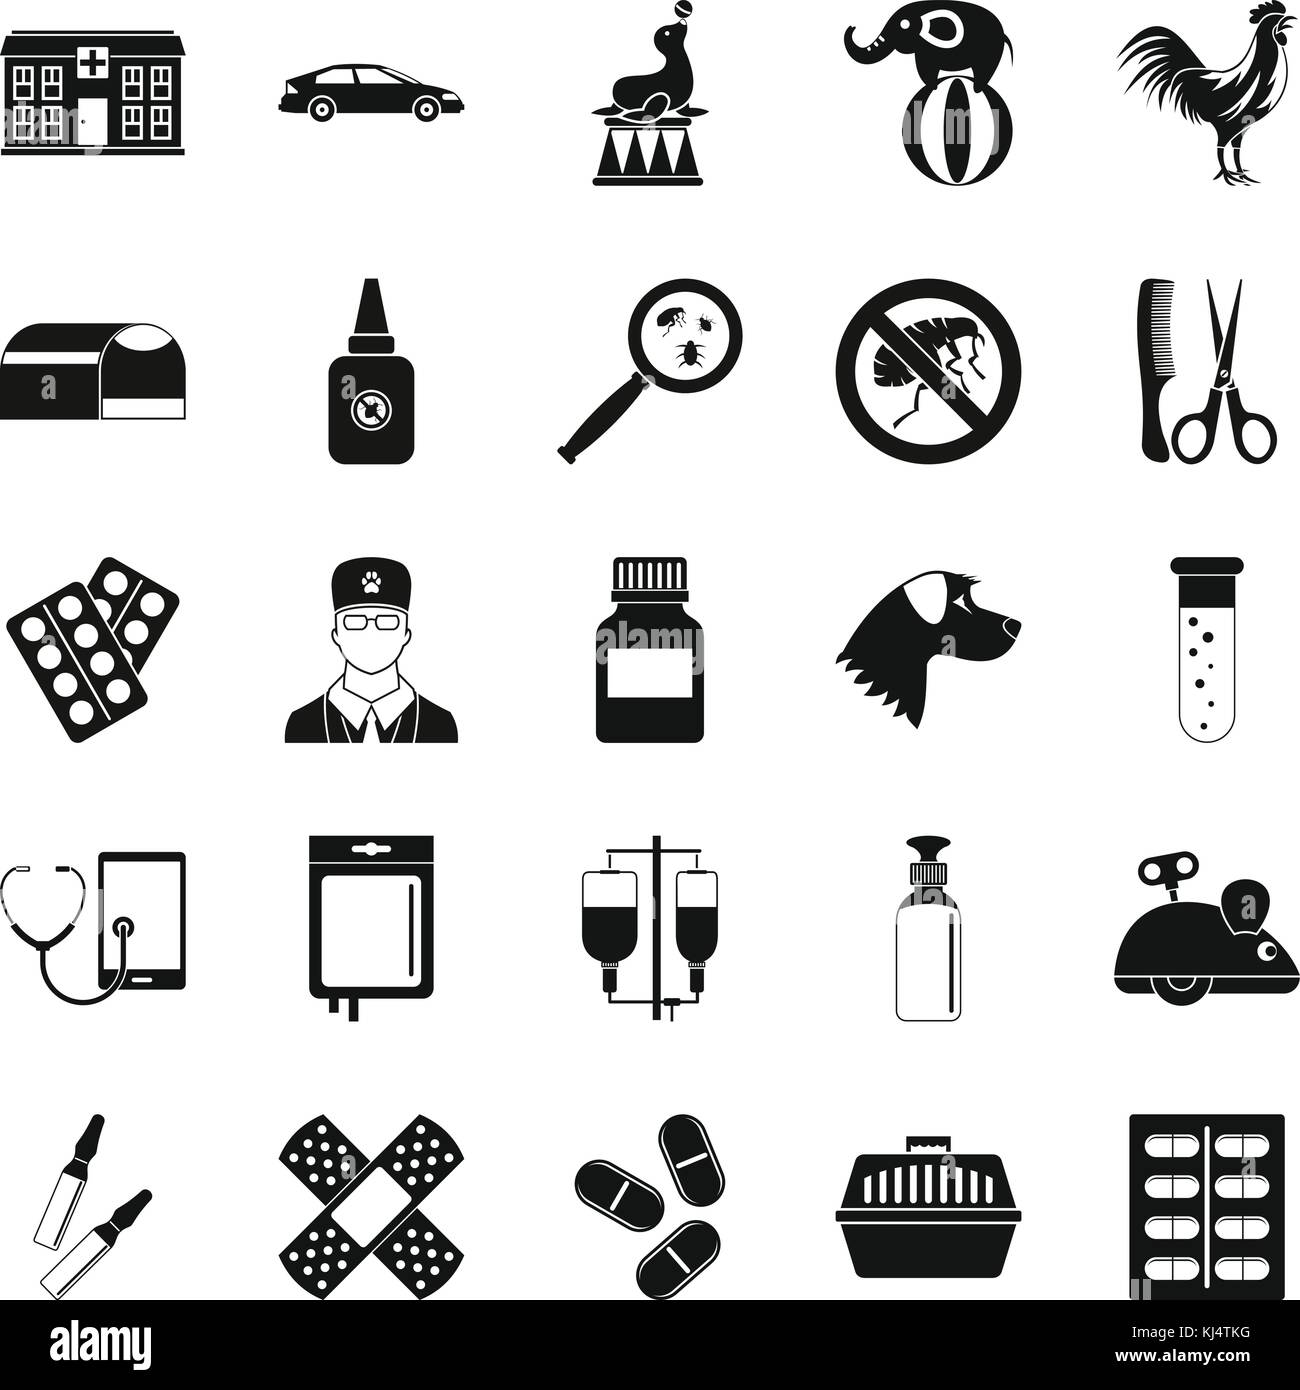 Veterinary icons set, simple style - Stock Image